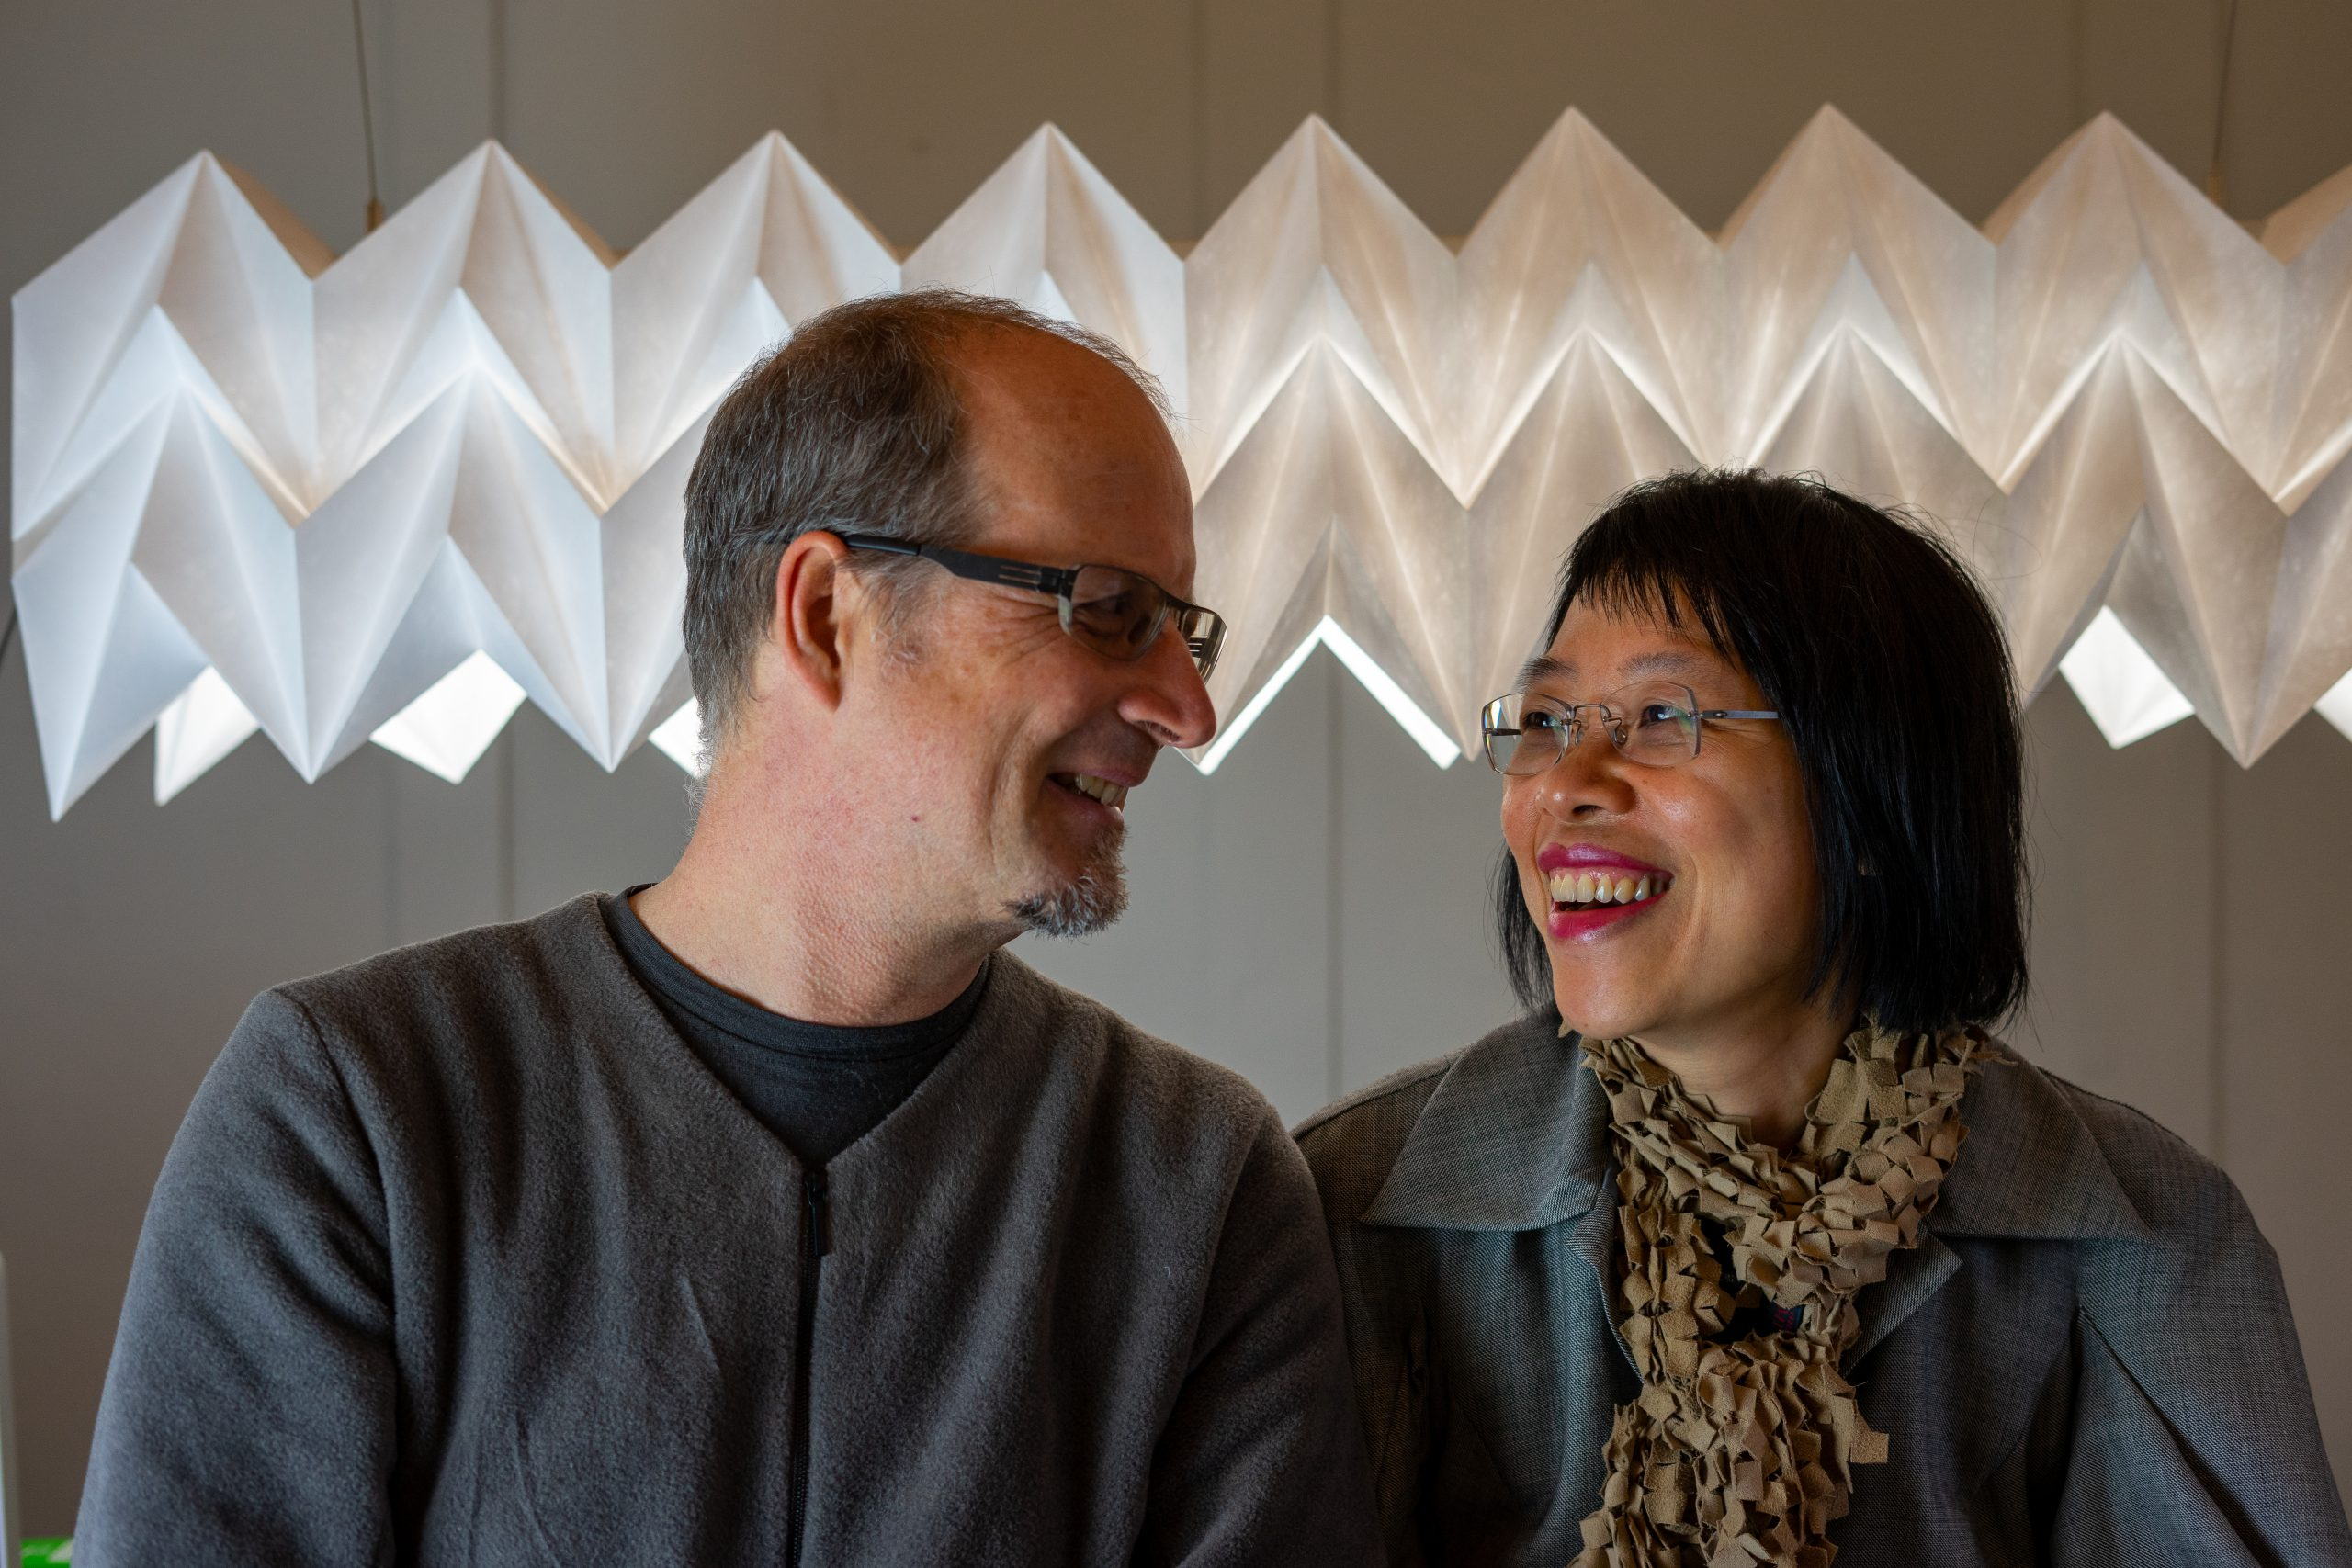 fung-and-bedford-artists-portrait-2